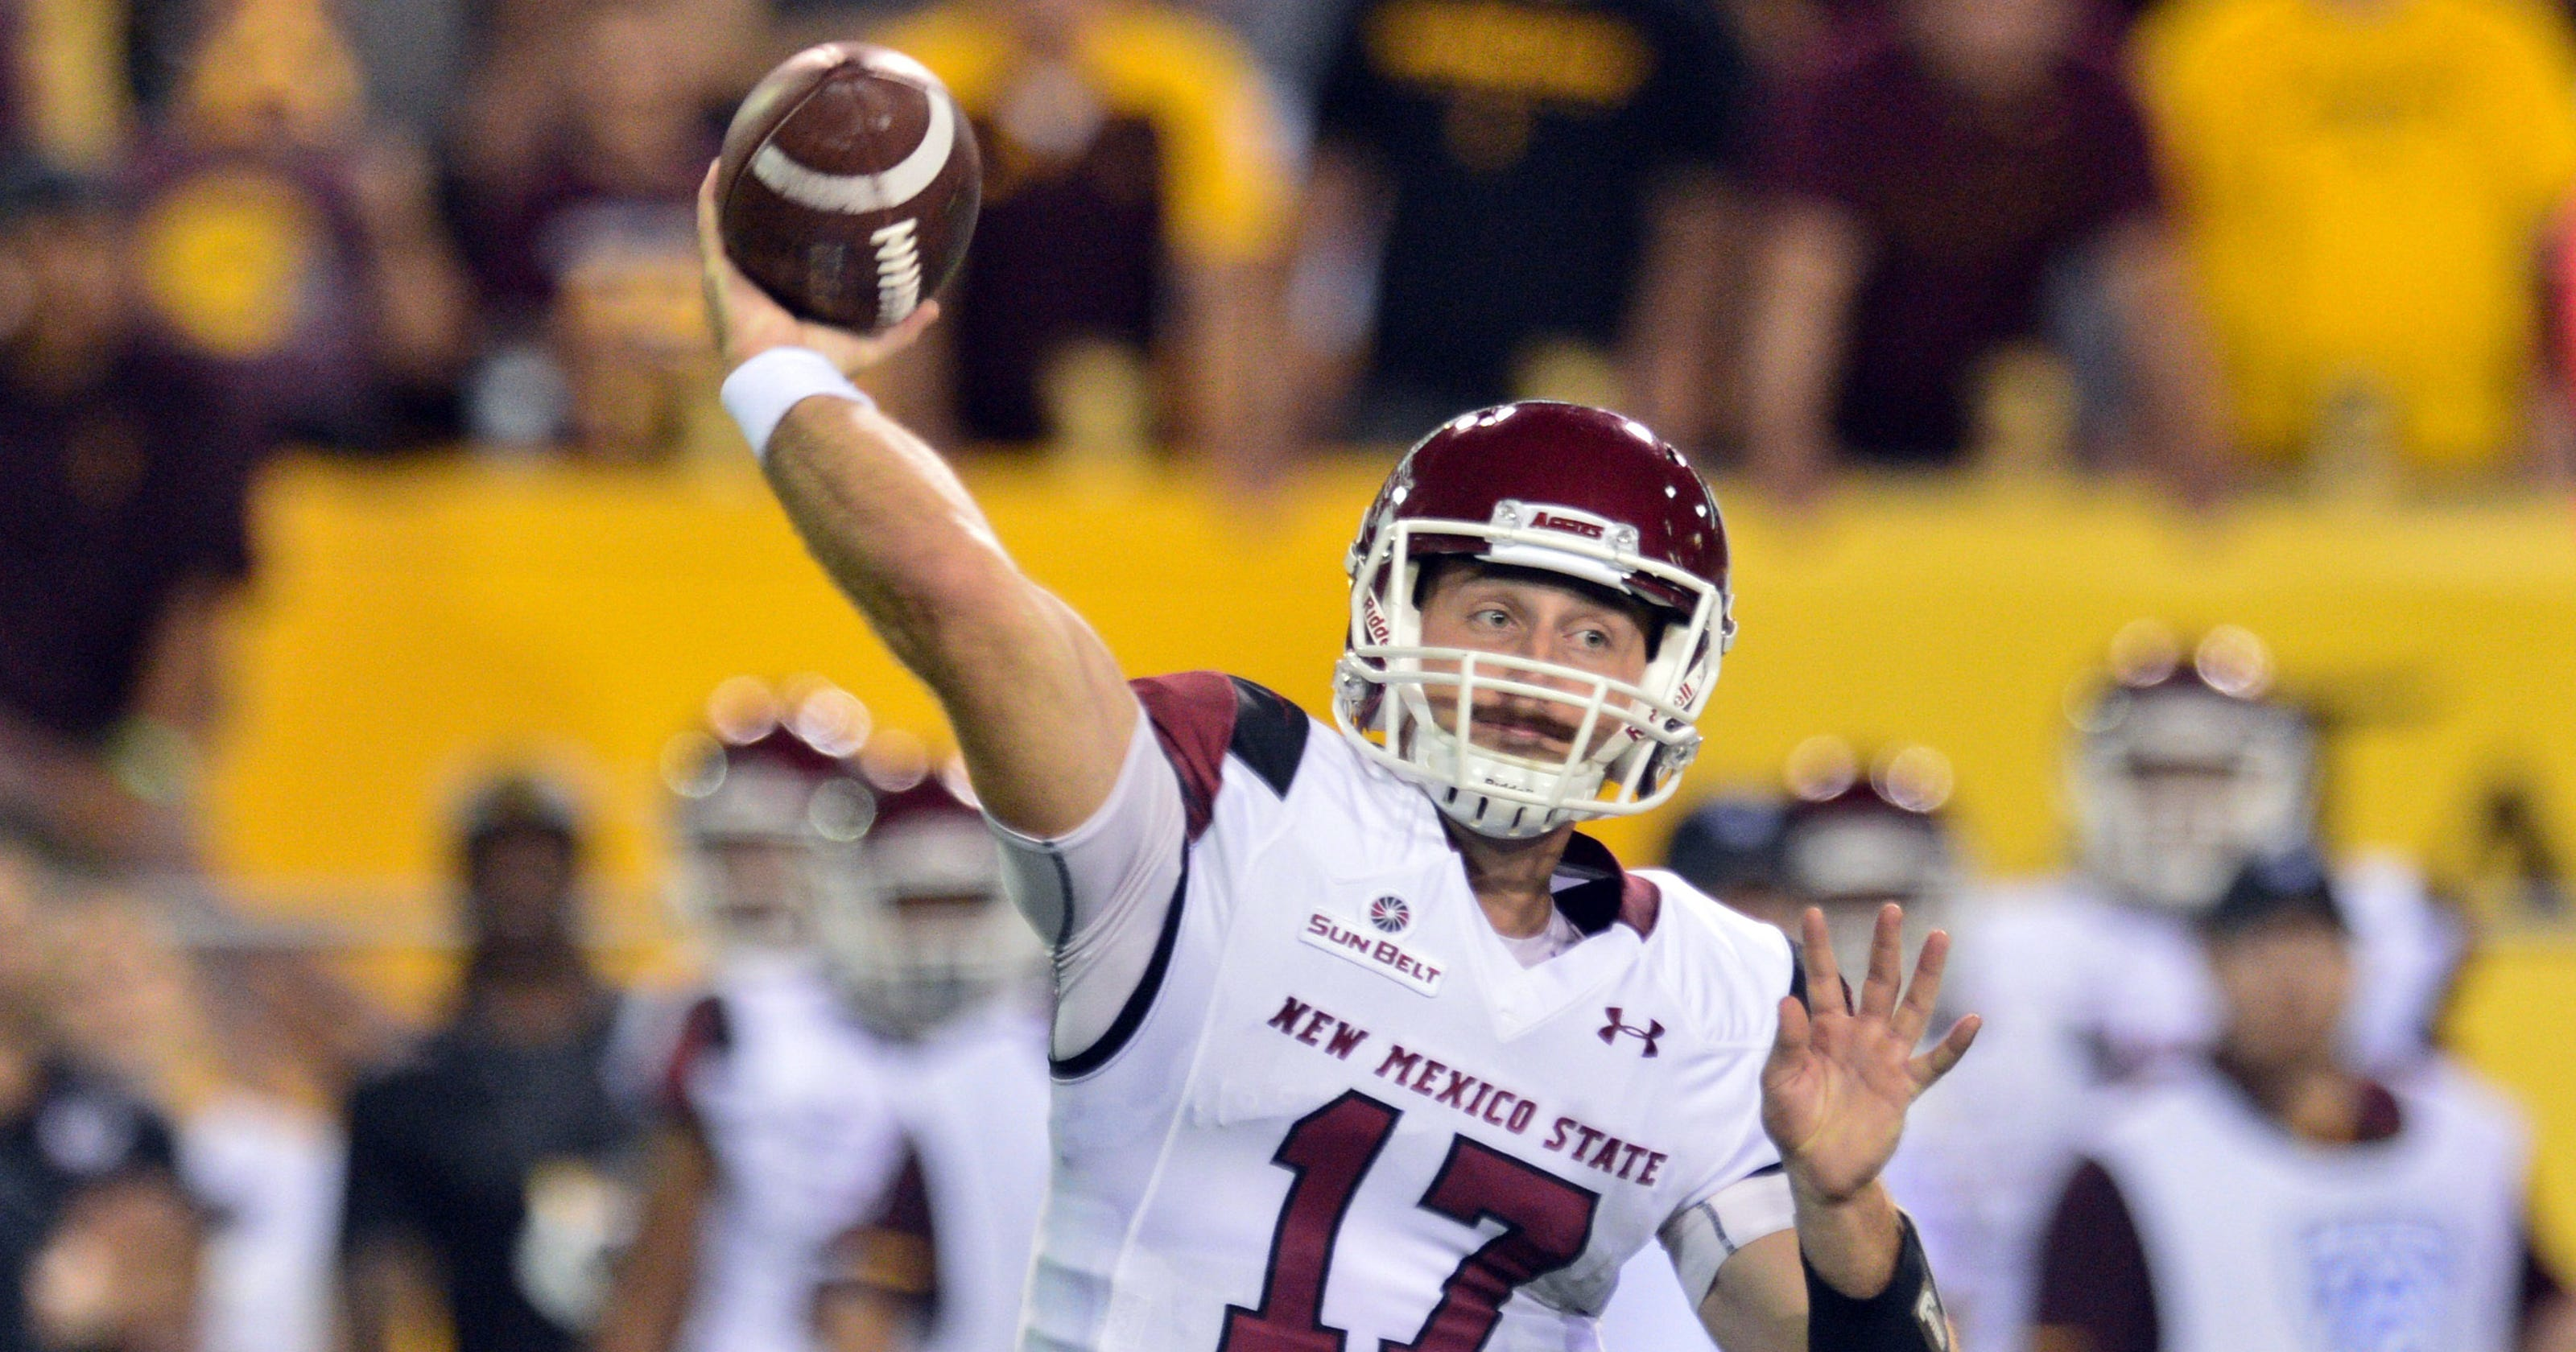 Arizona State pulls away for opening night victory a241d68f6